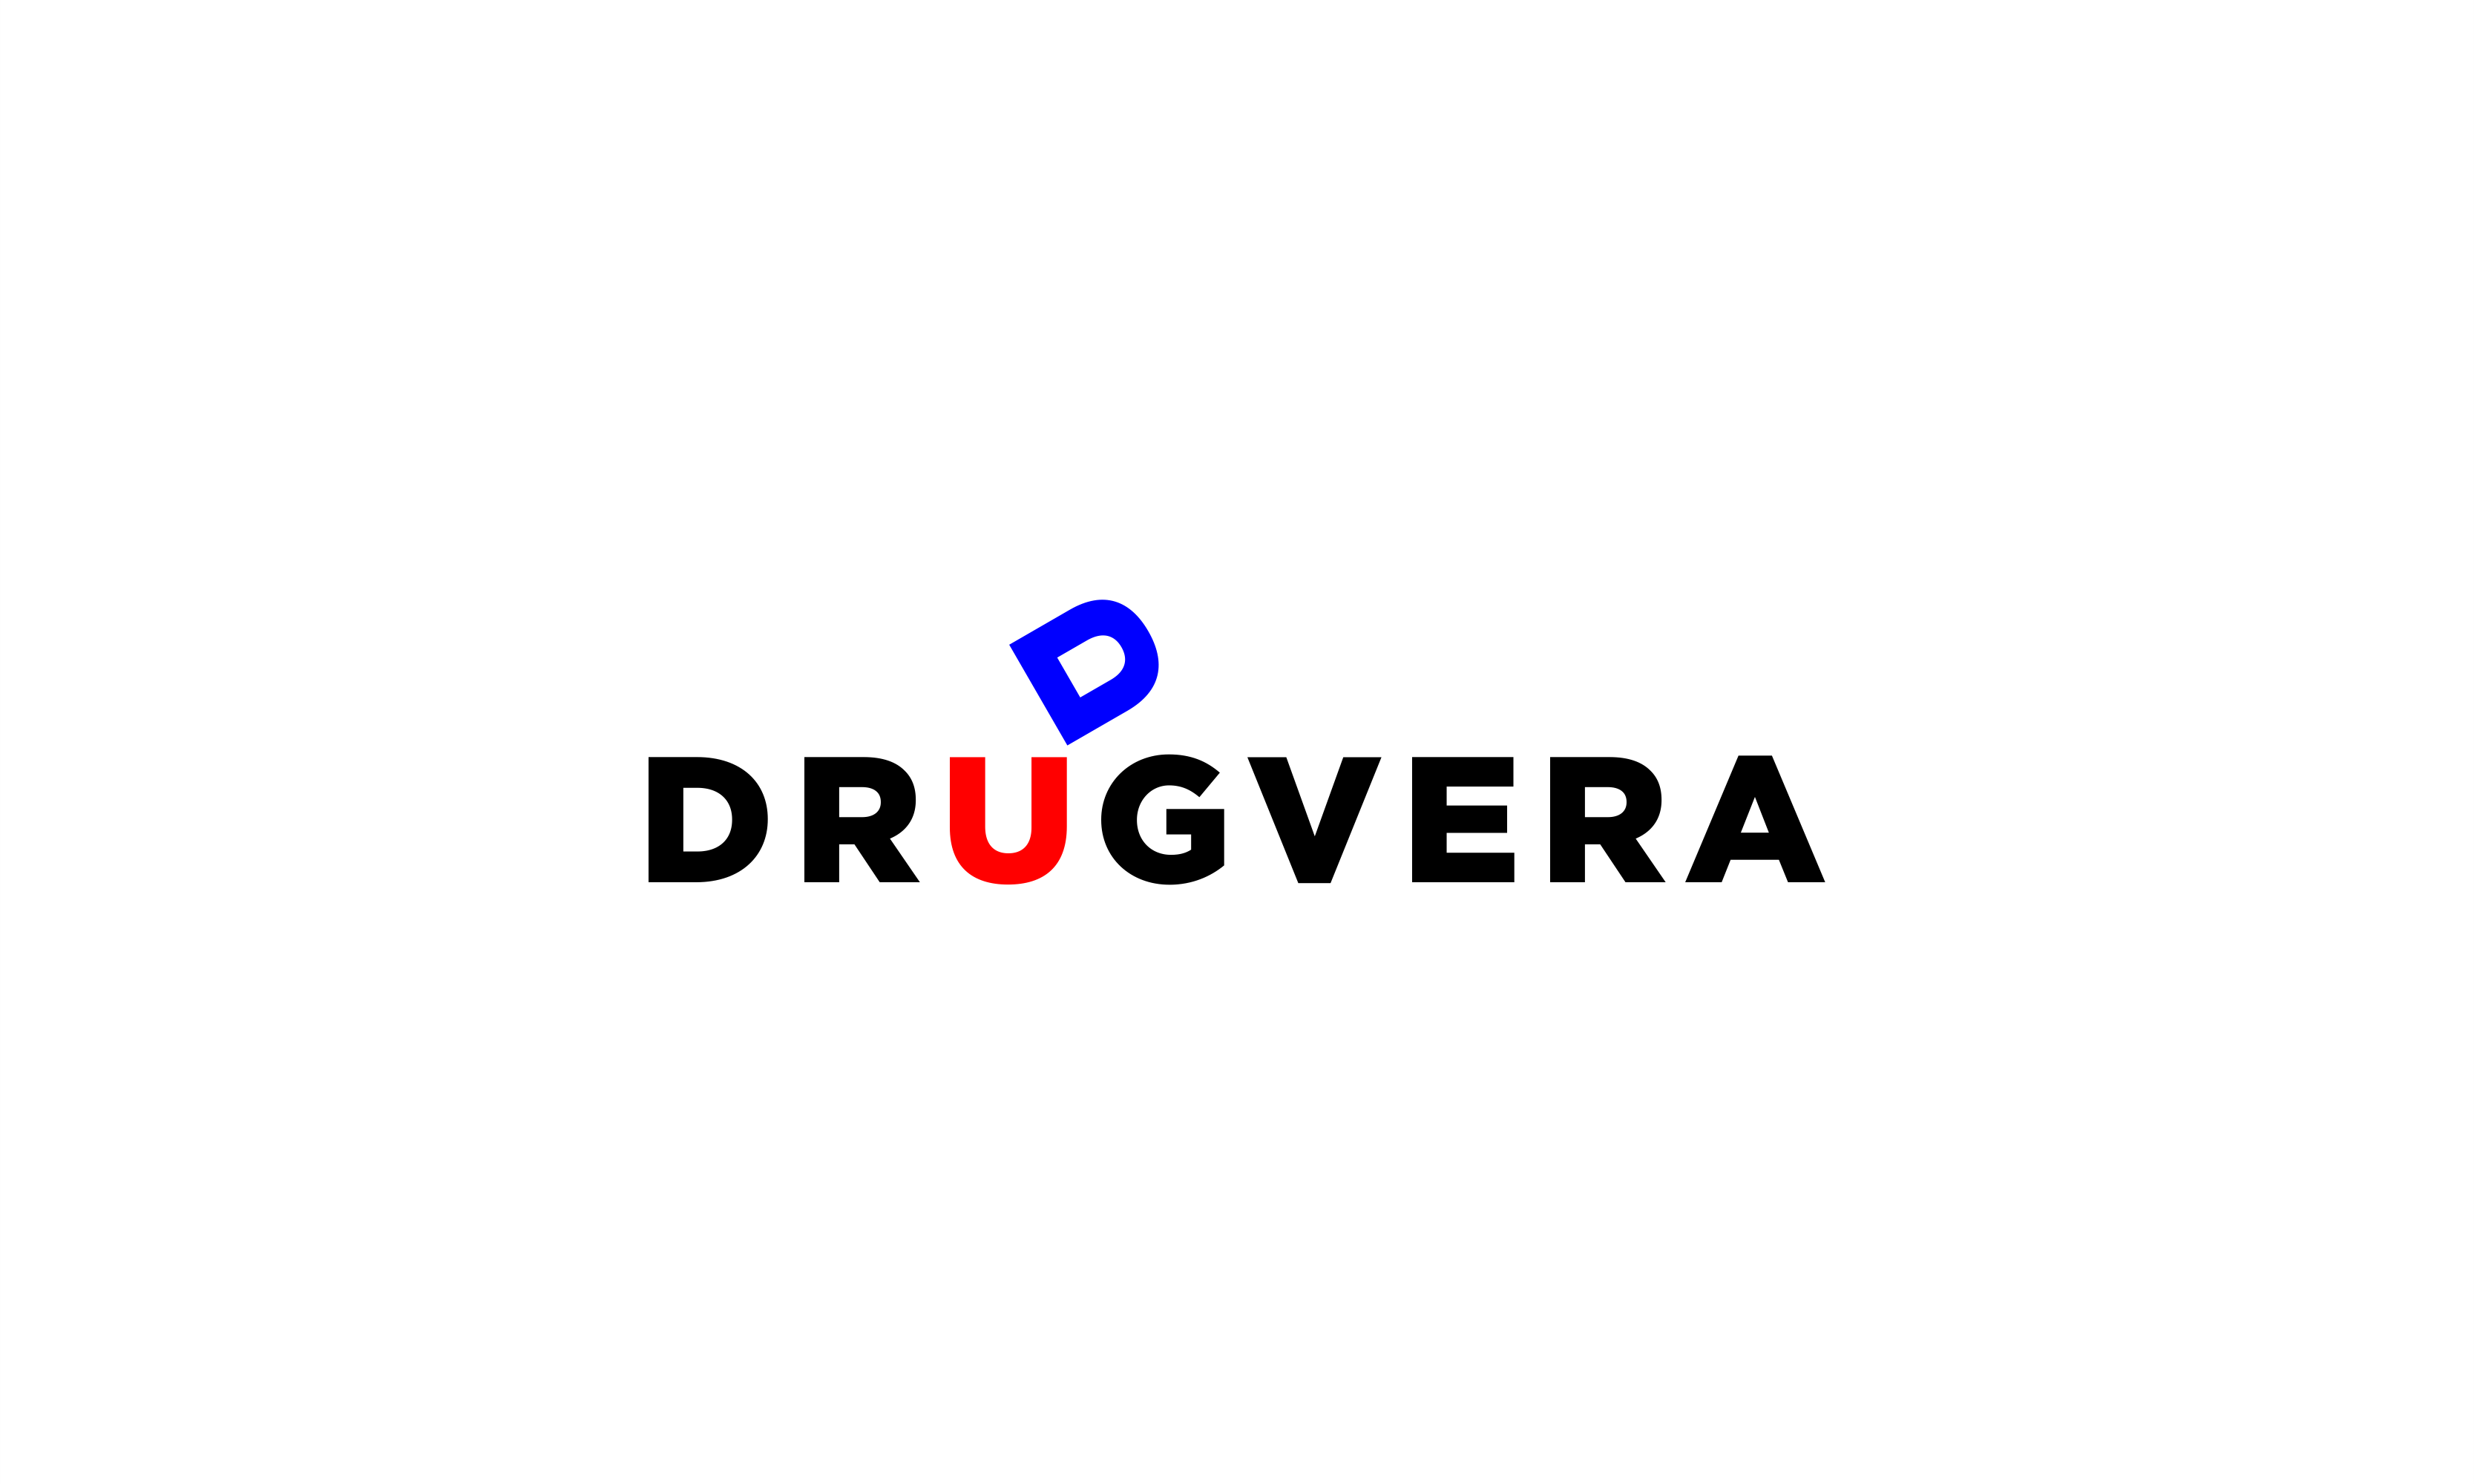 Drugvera - Healthcare brand name for sale